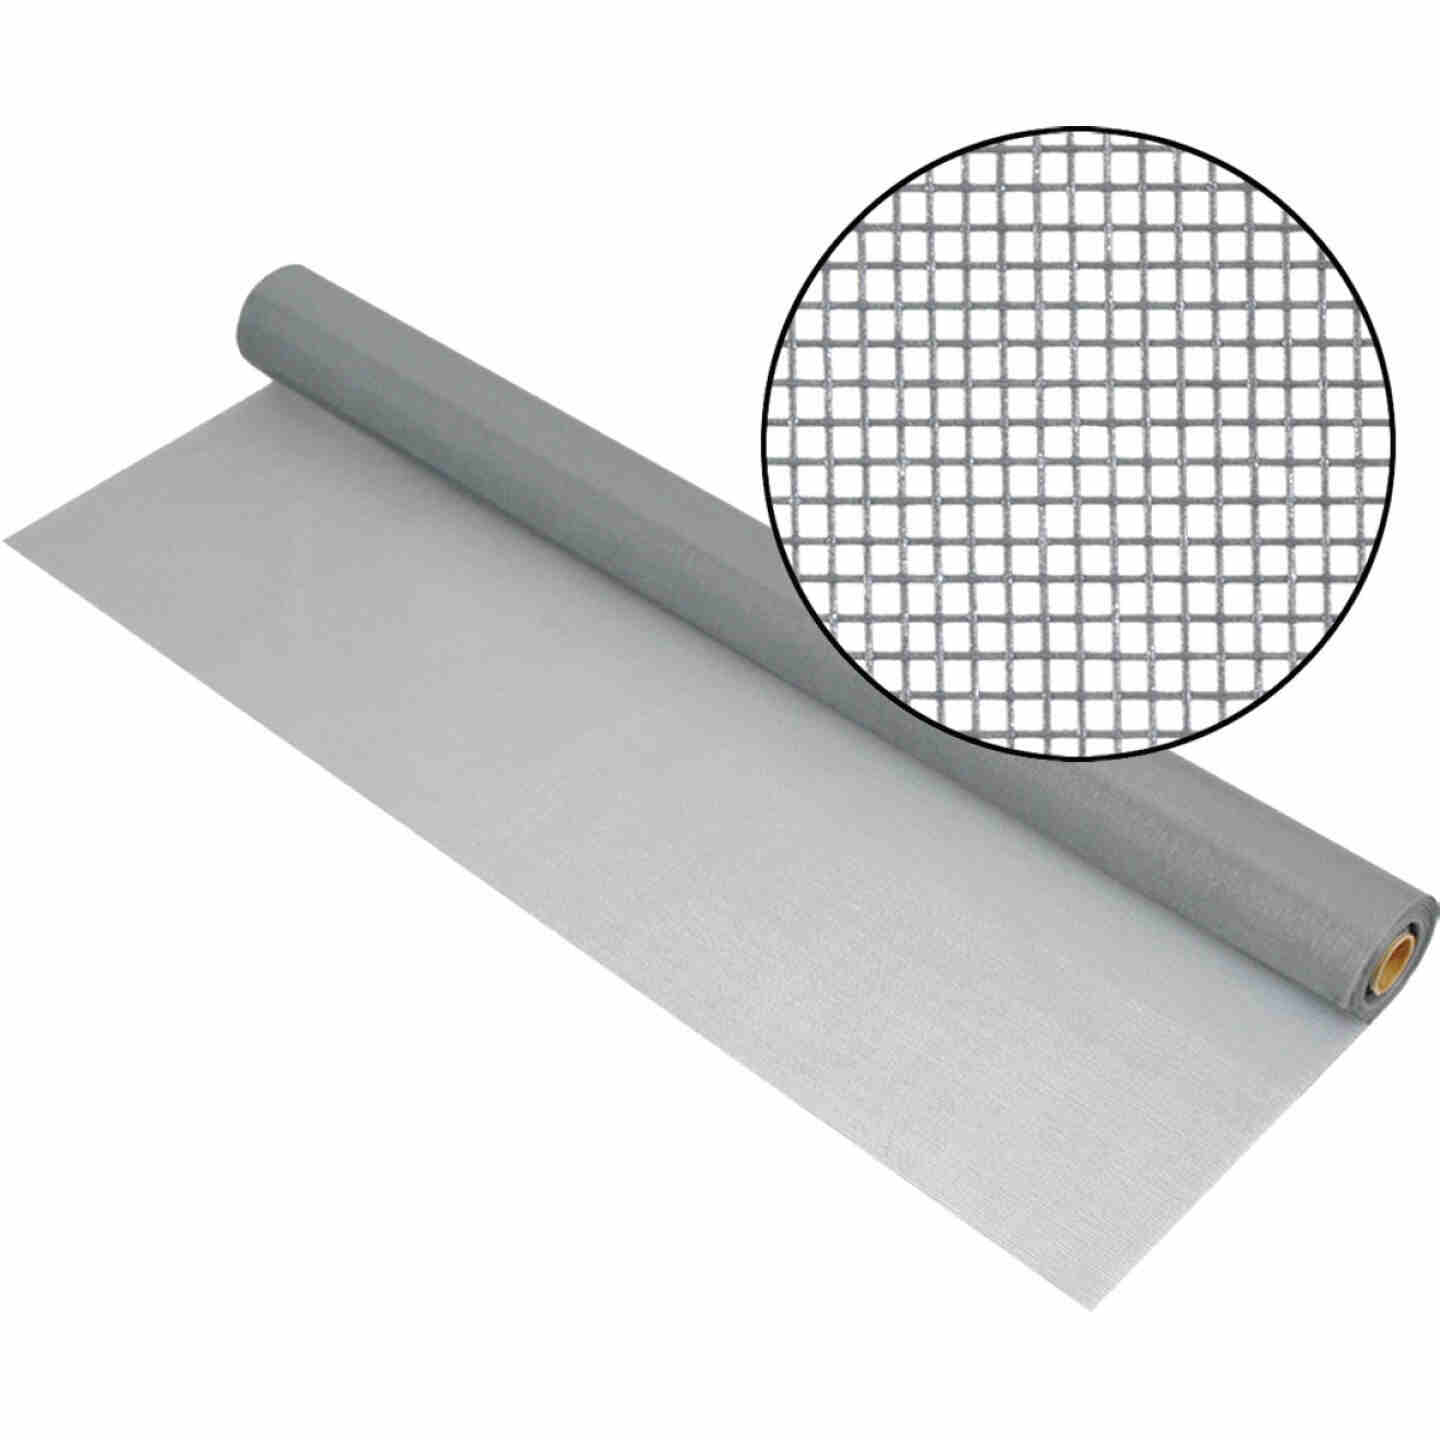 Phifer 30 In. x 100 Ft. Gray Fiberglass Mesh Screen Cloth Image 1